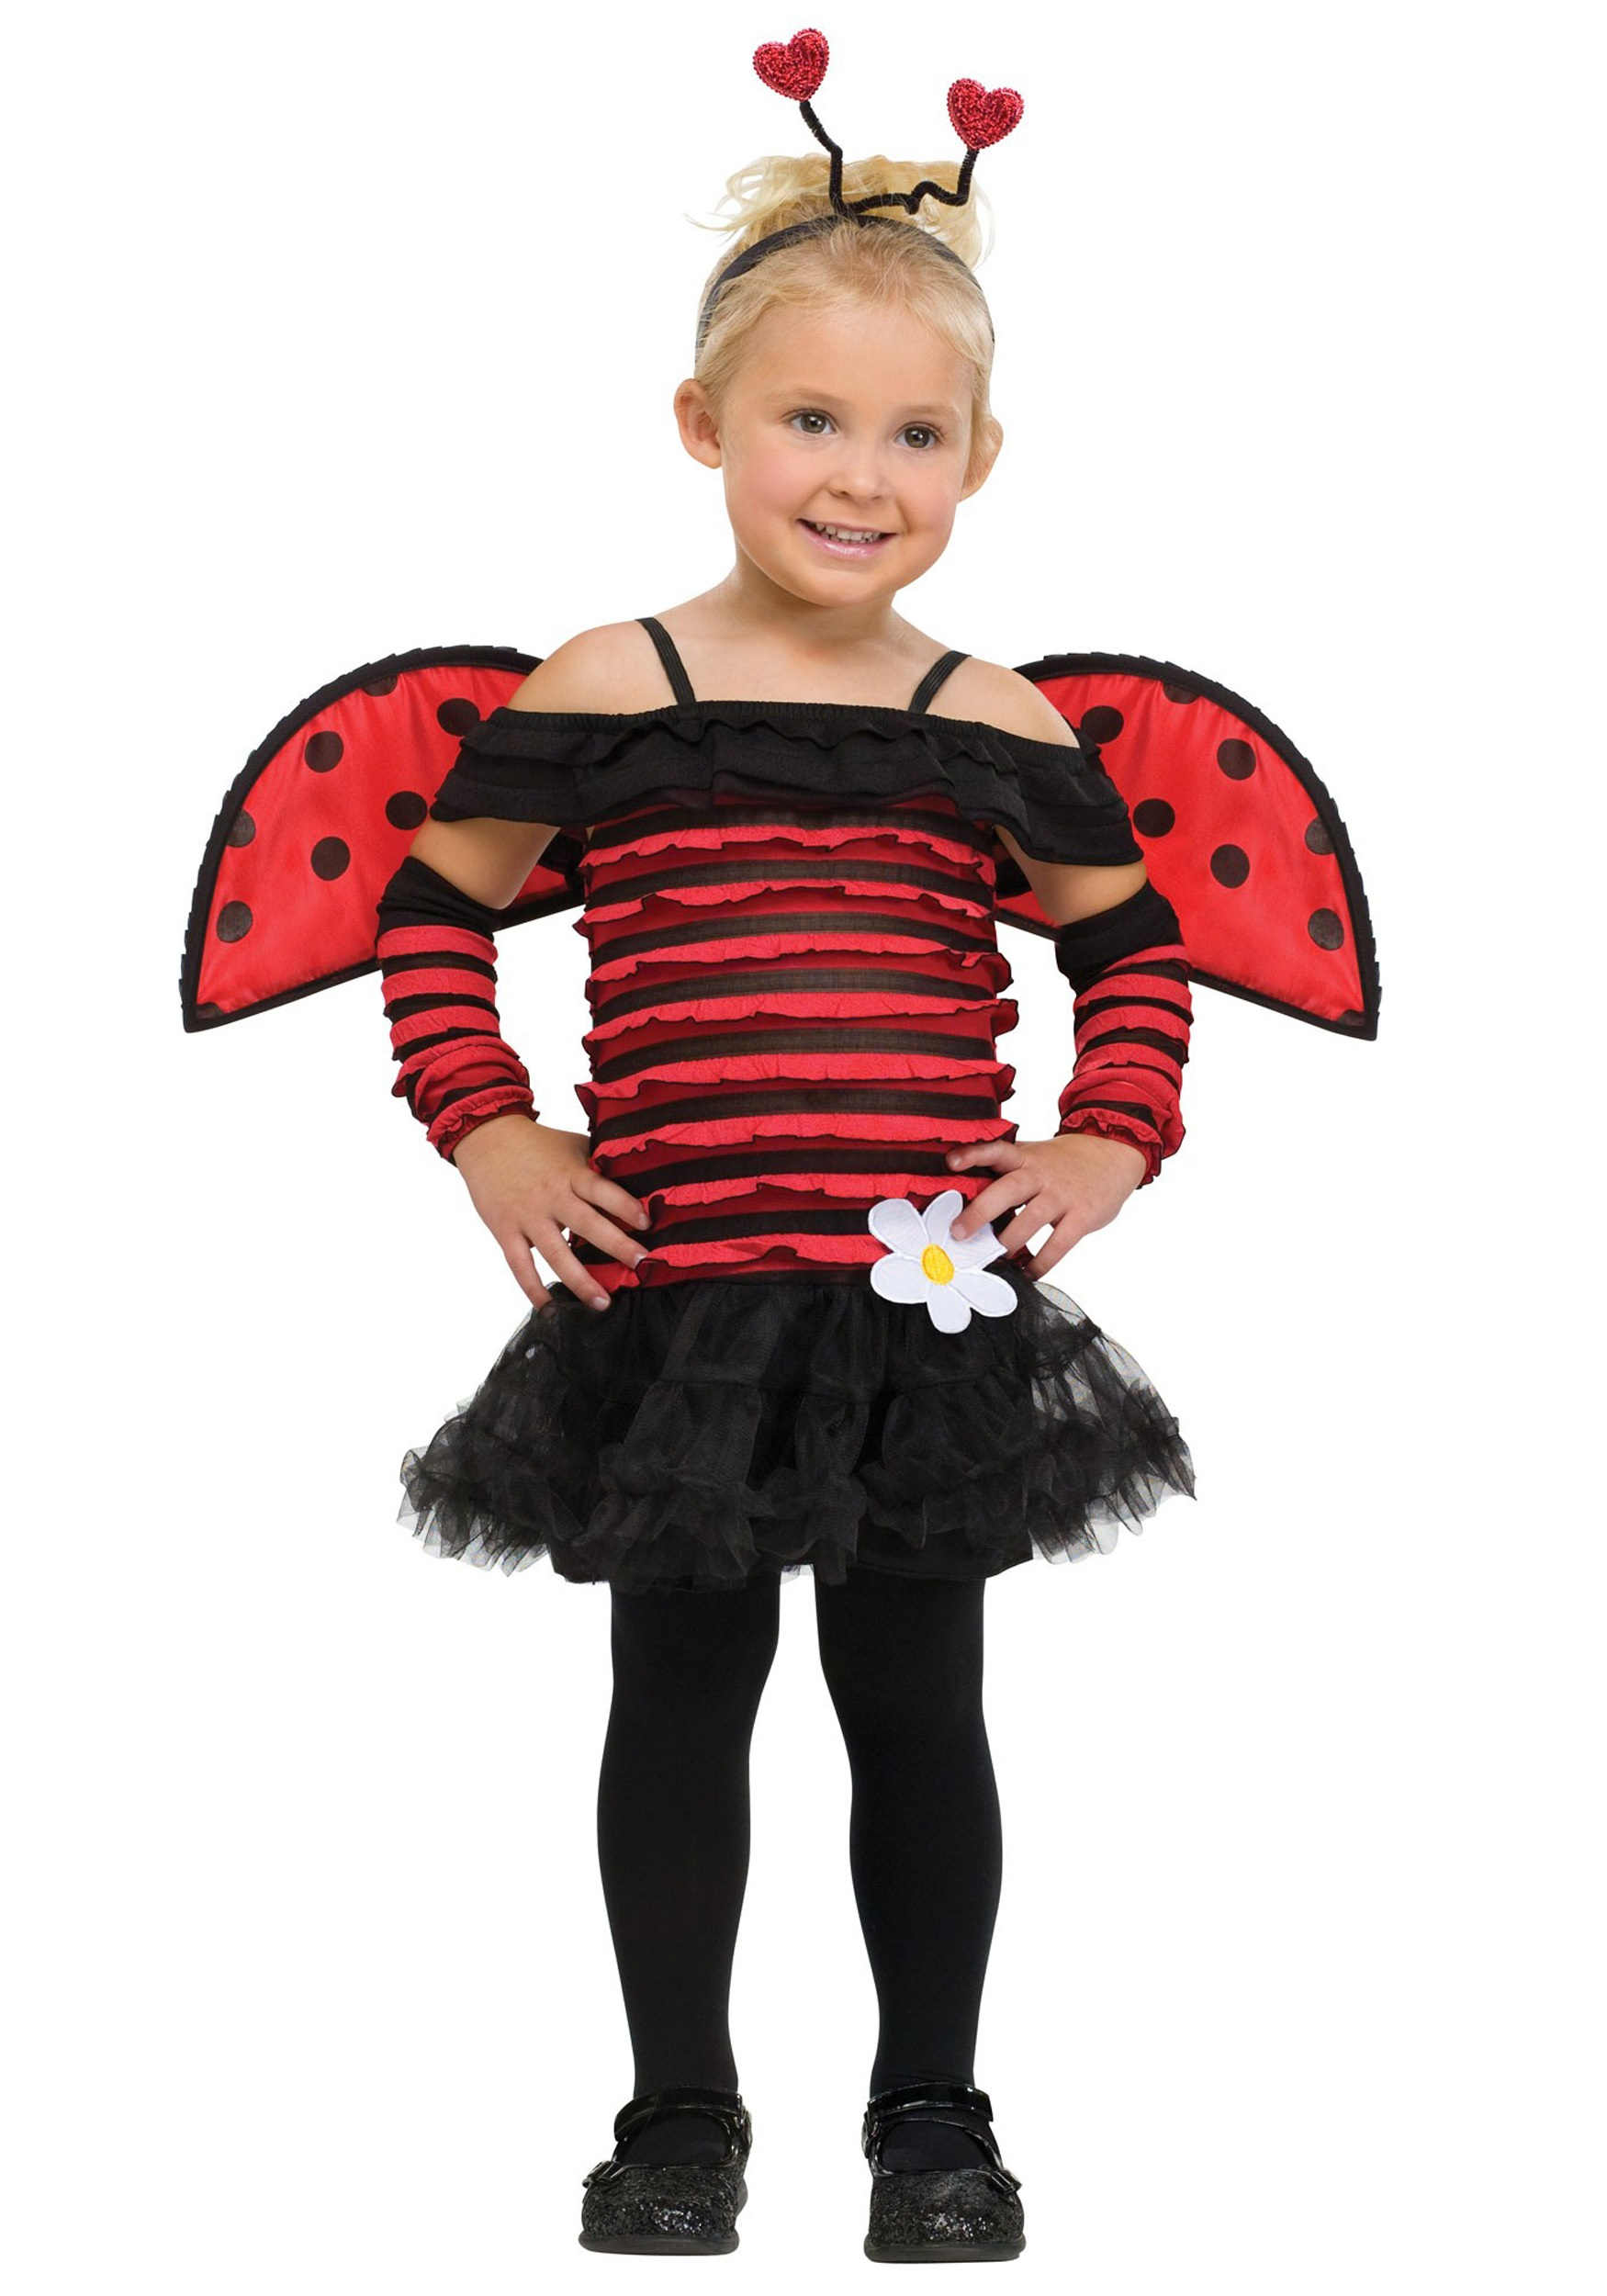 Toddler Little Lady Bug Costume  sc 1 st  Halloween Costumes & Toddler Little Lady Bug Costume - Halloween Costumes